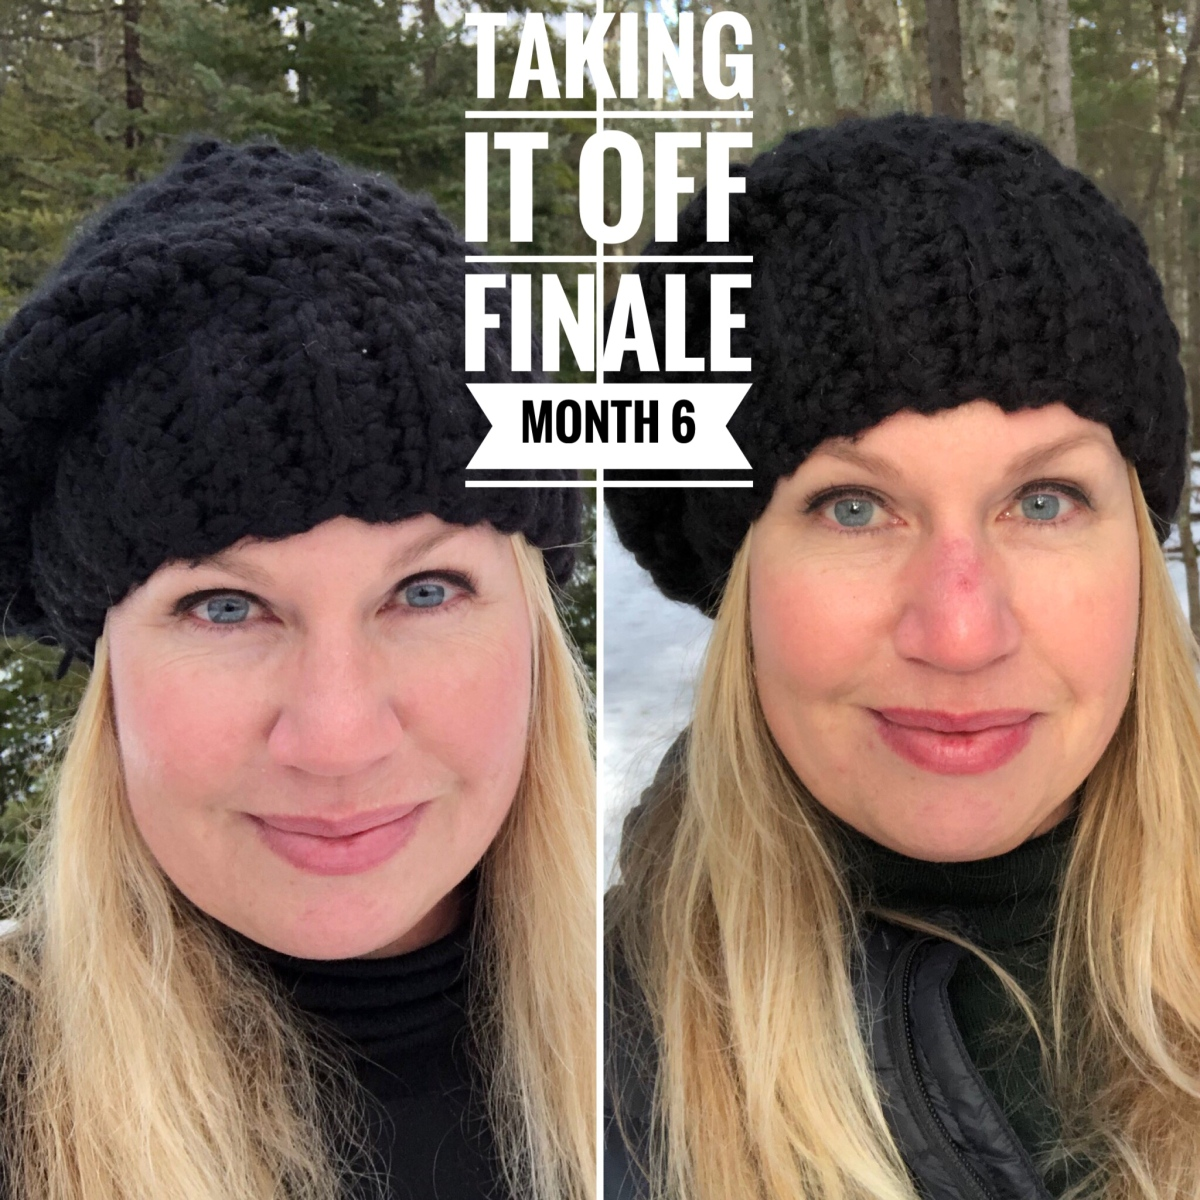 Taking It Off Finale – Month 6